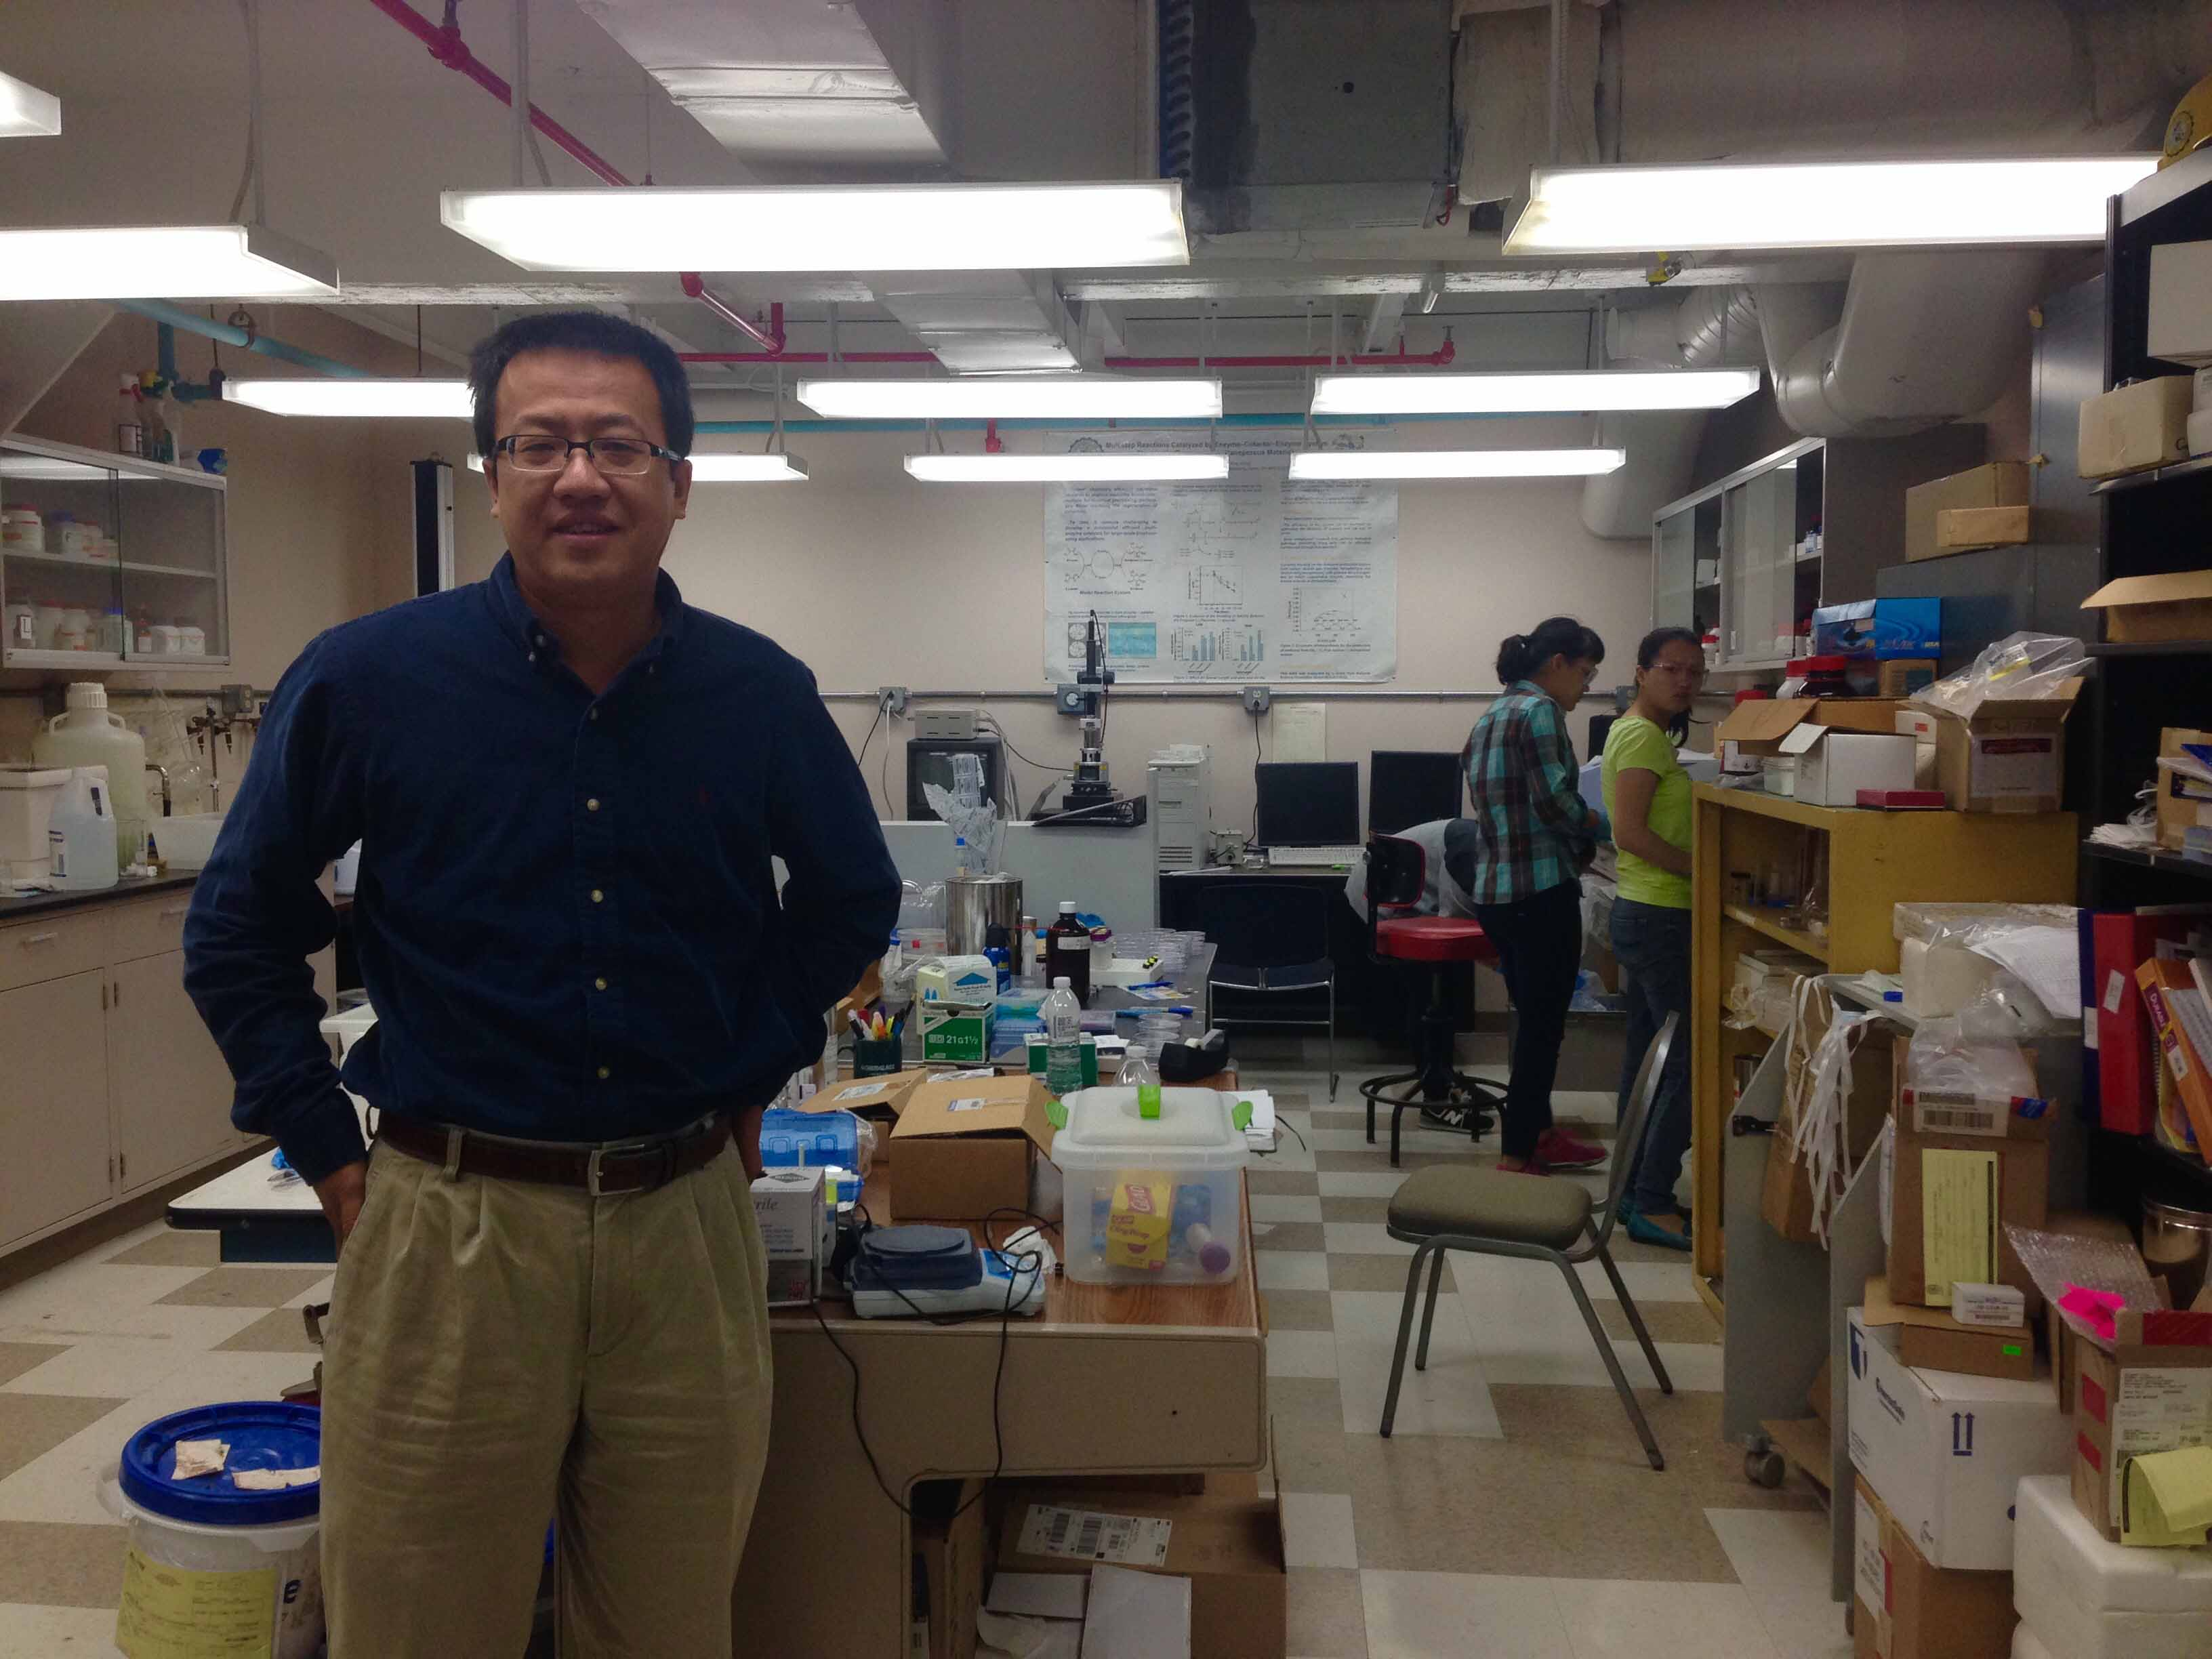 Associate professor of chemical and bimolecular engineering, Jie Zheng, in his lab at Whitby Hall.